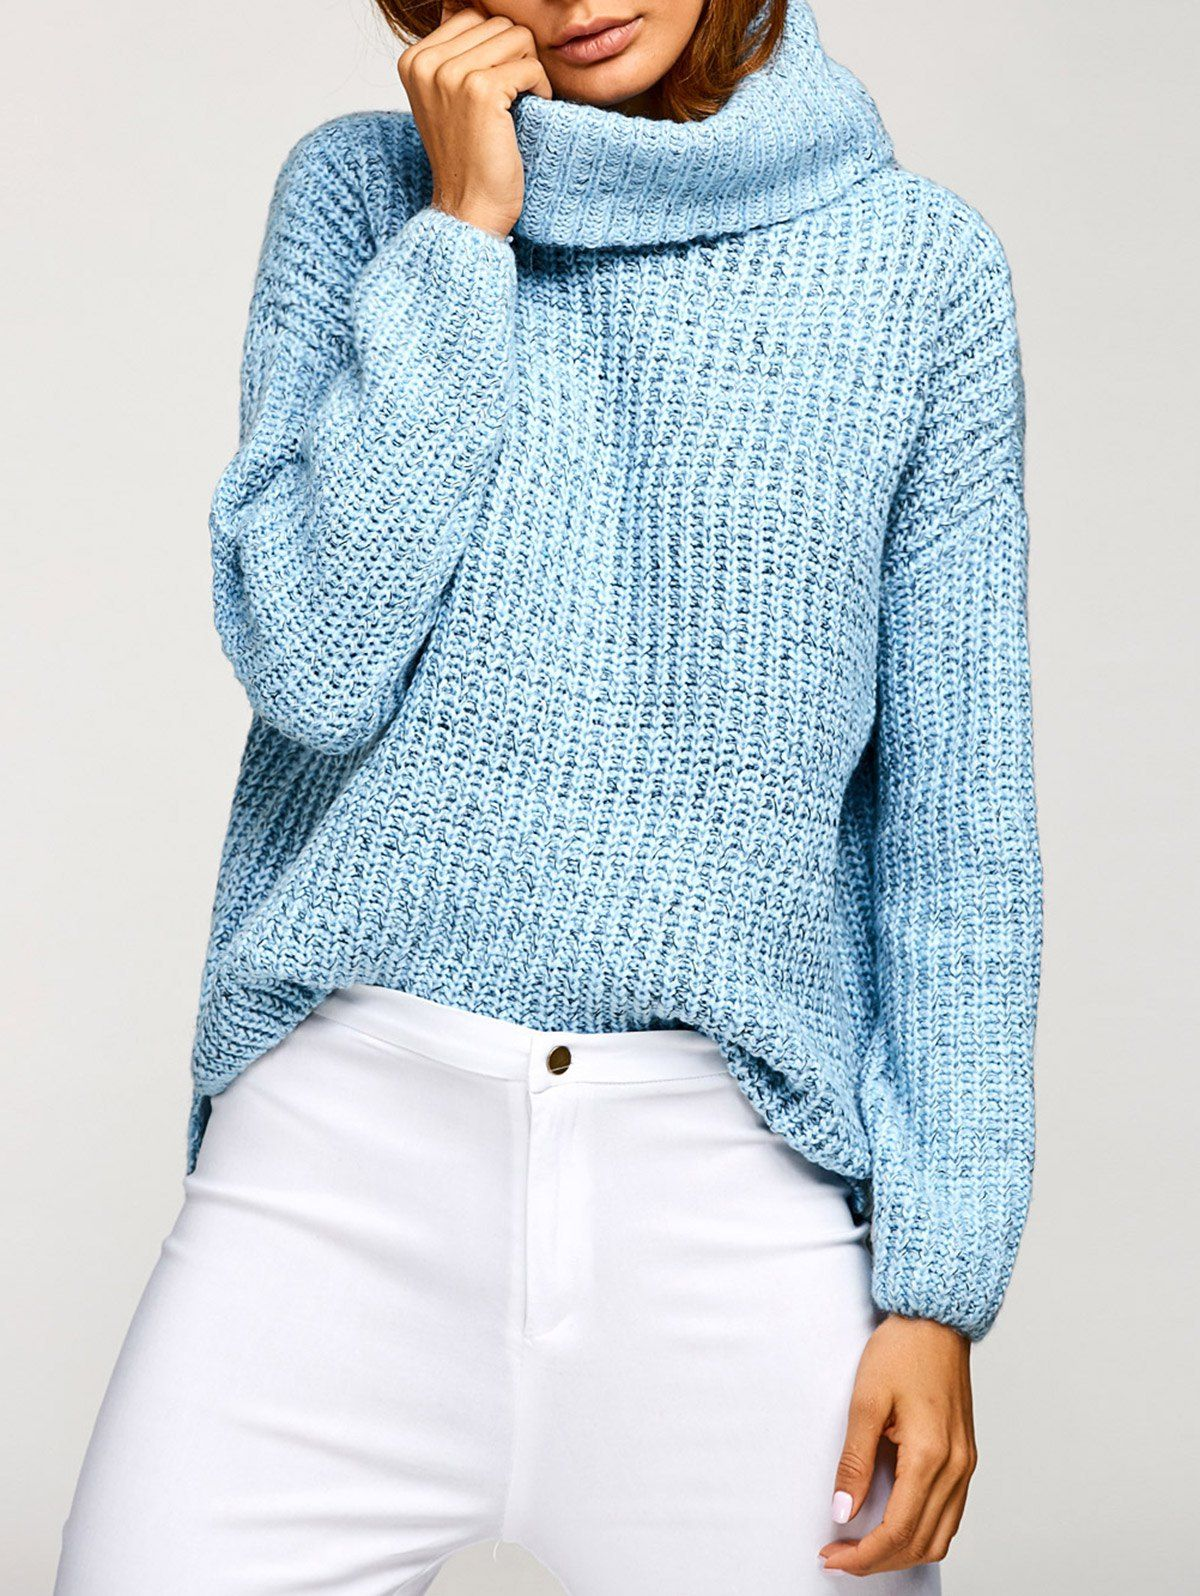 Cowl Neck Pullover Oversized Sweater | Cowl neck, Pullover and Clothes